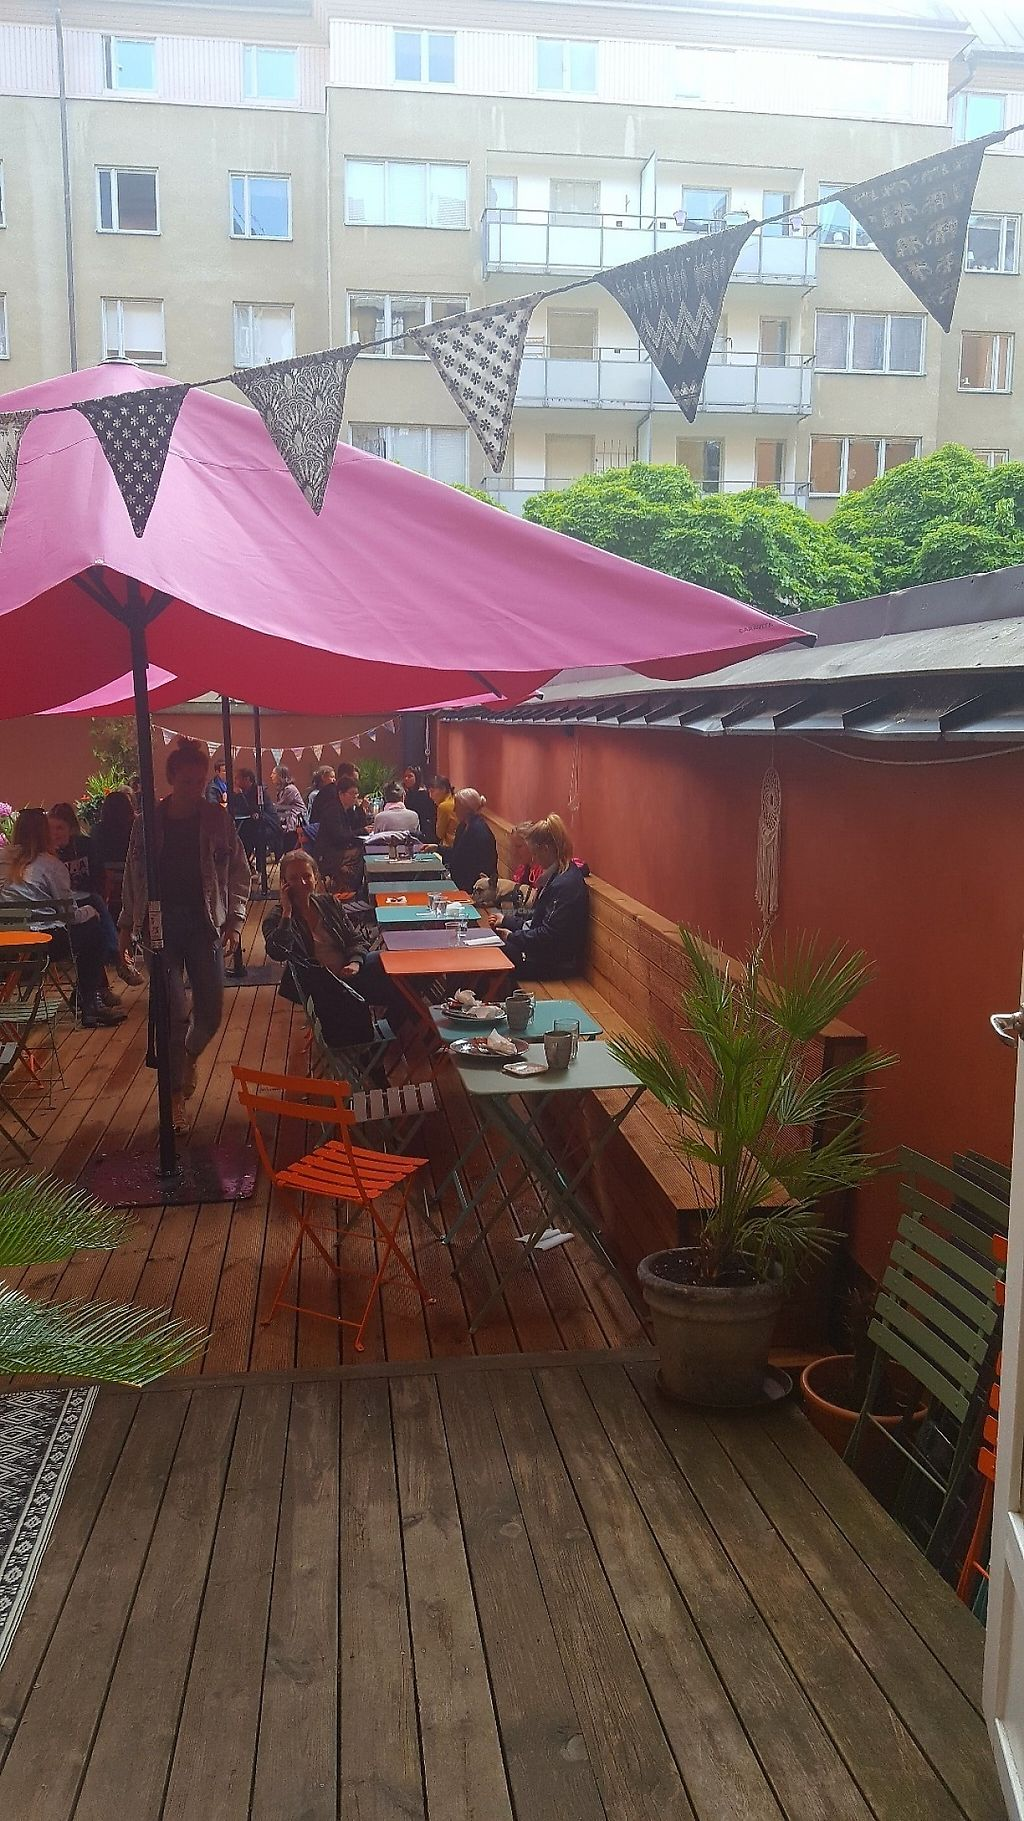 """Photo of Mahalo  by <a href=""""/members/profile/vanialuena"""">vanialuena</a> <br/>Mahalo Stockholm Outdoor seating <br/> June 5, 2017  - <a href='/contact/abuse/image/66713/266011'>Report</a>"""